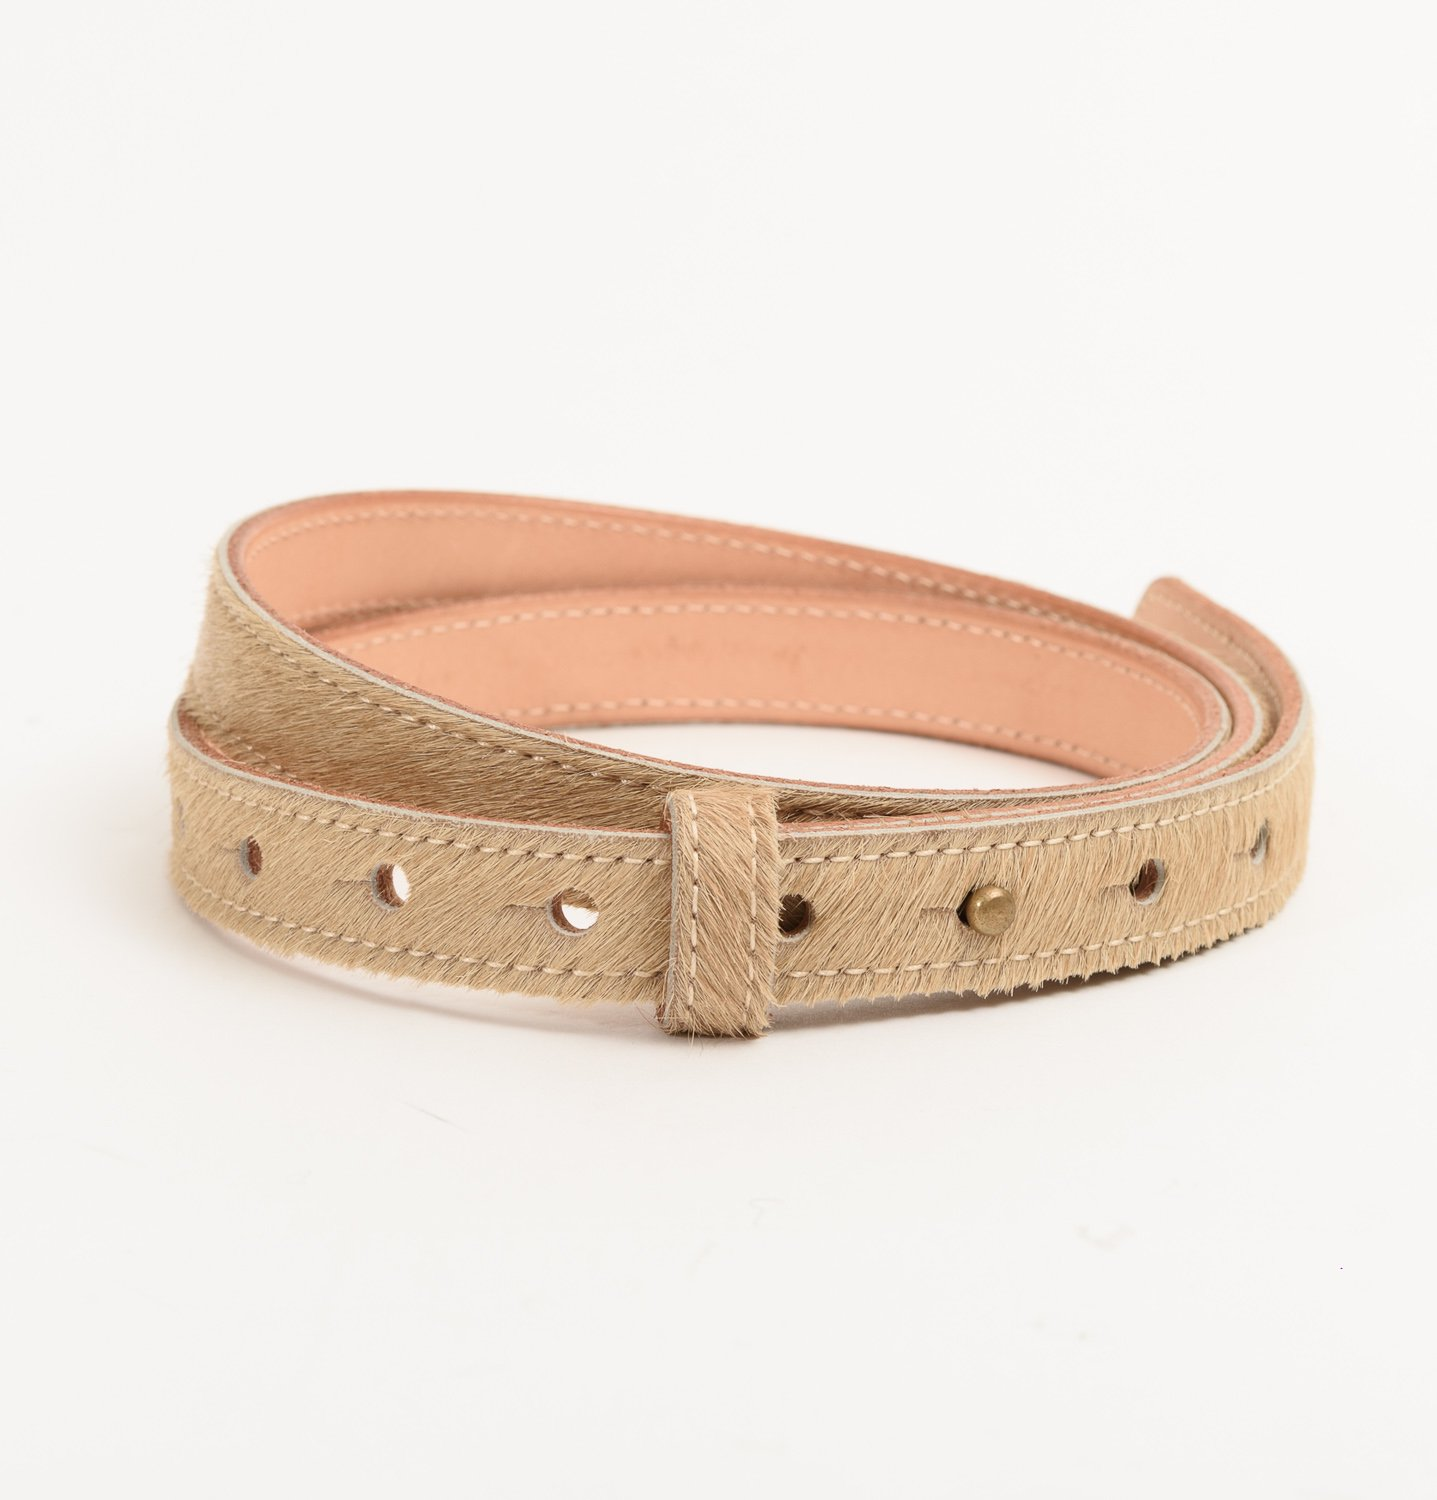 FAIR BELT(BEIGE)